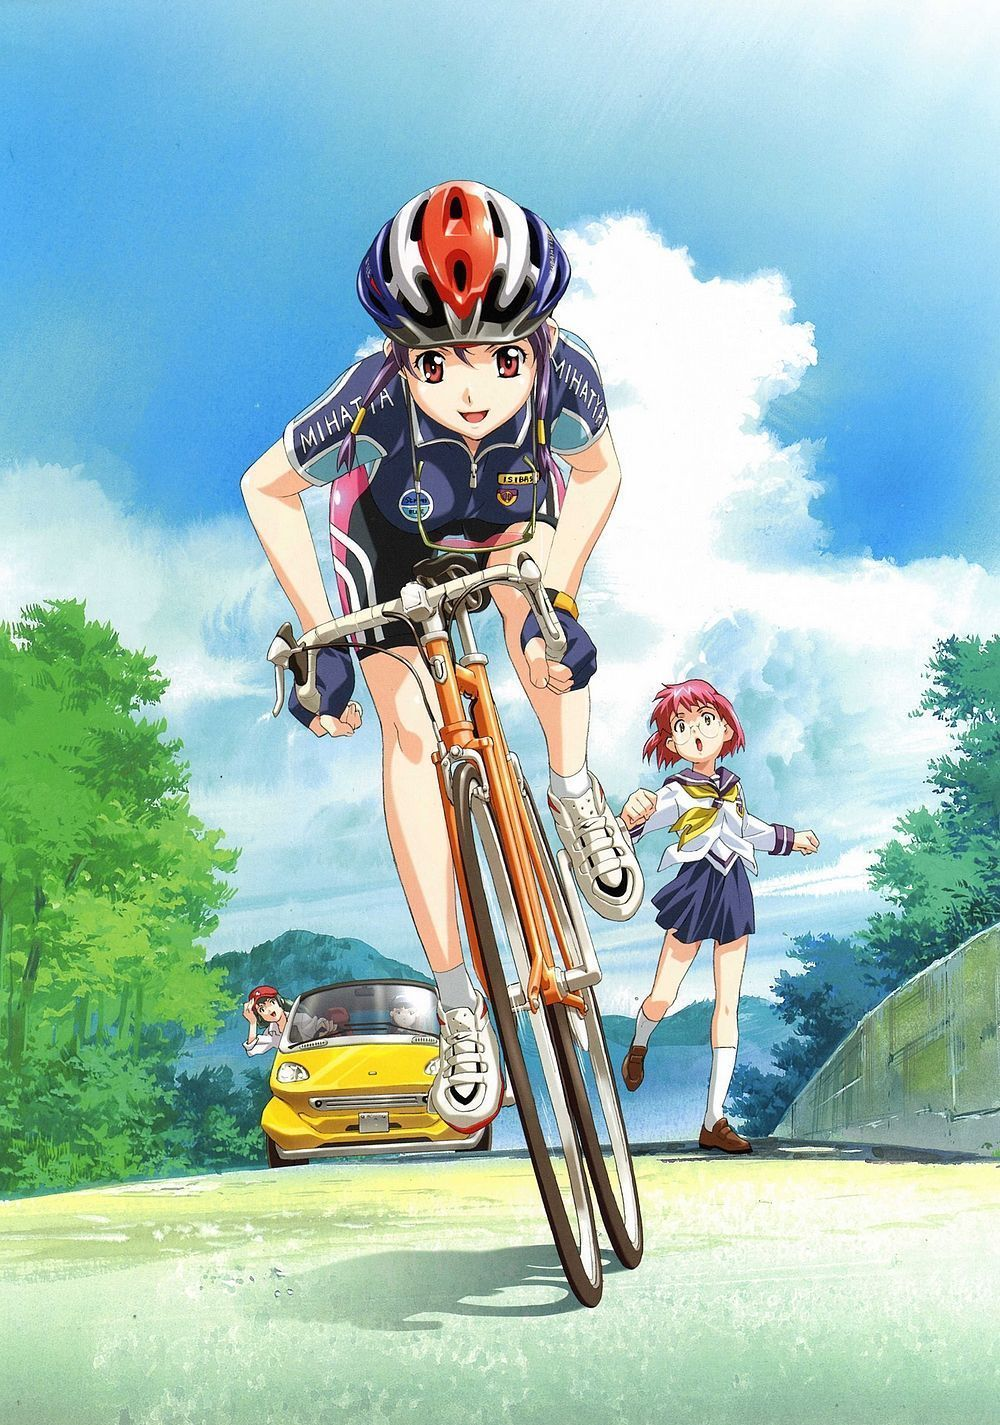 Boy And Girl On Bike Wallpaper Manga Et Sport Page 4